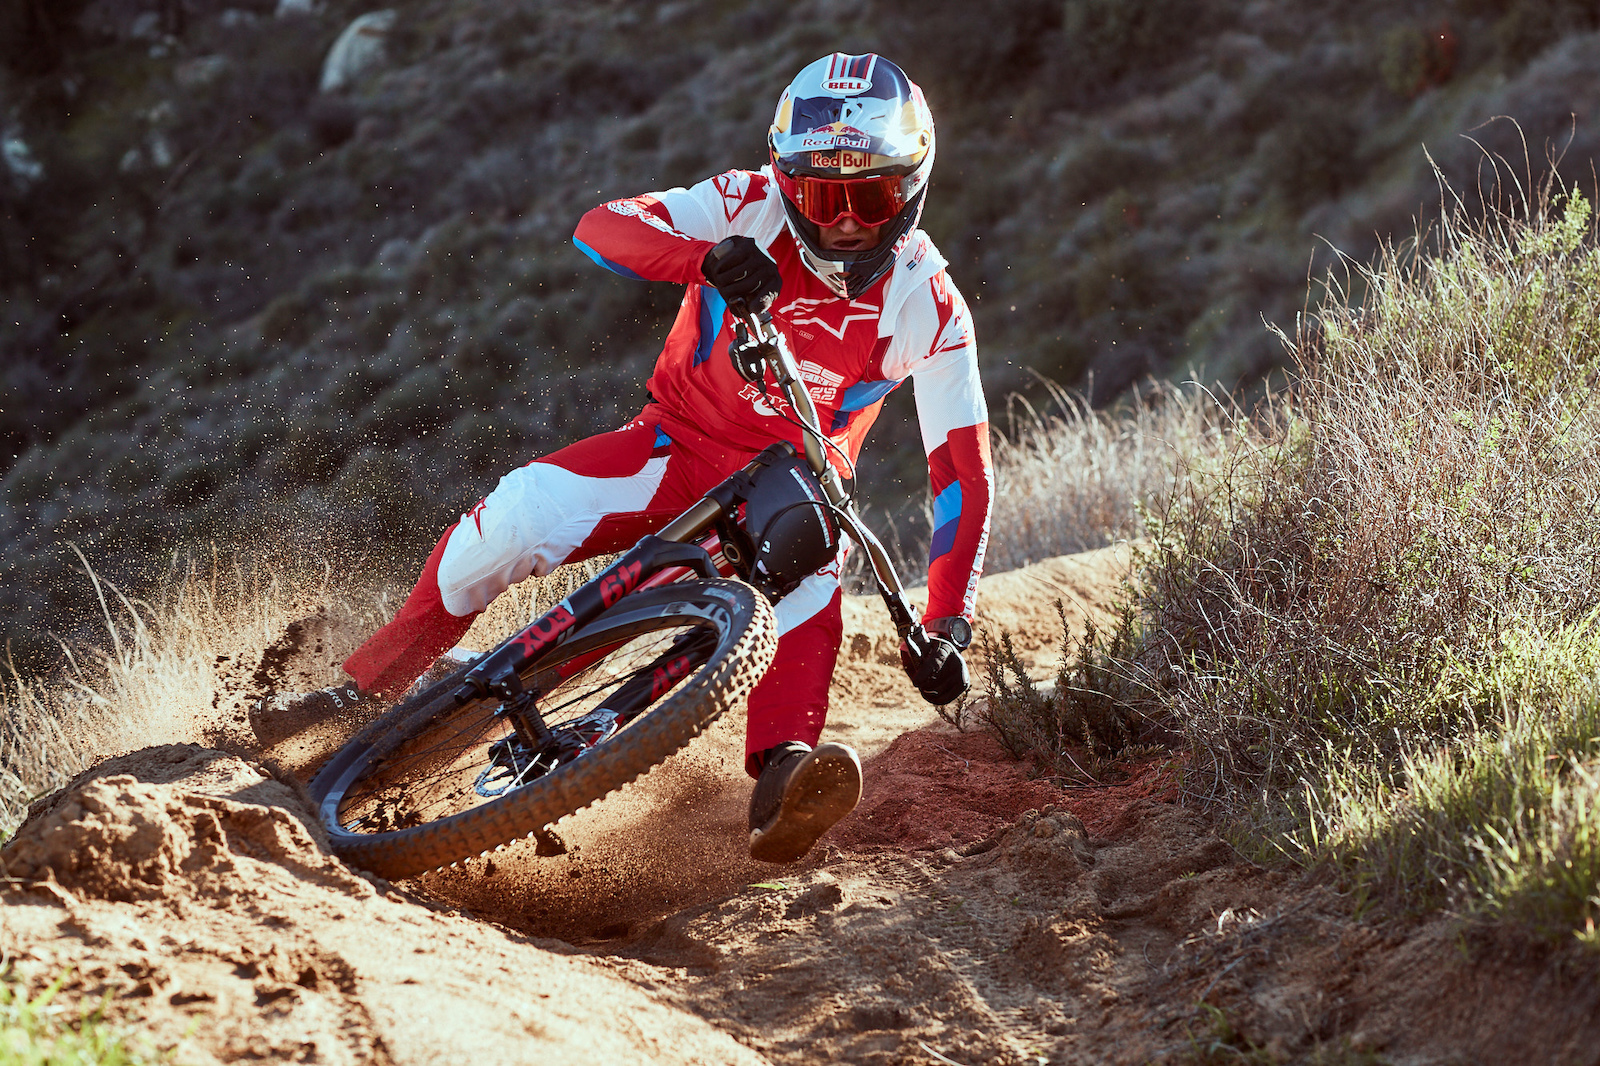 c9204454ade Interview: Aaron Gwin on His Break With YT & Becoming a Team Owner ...